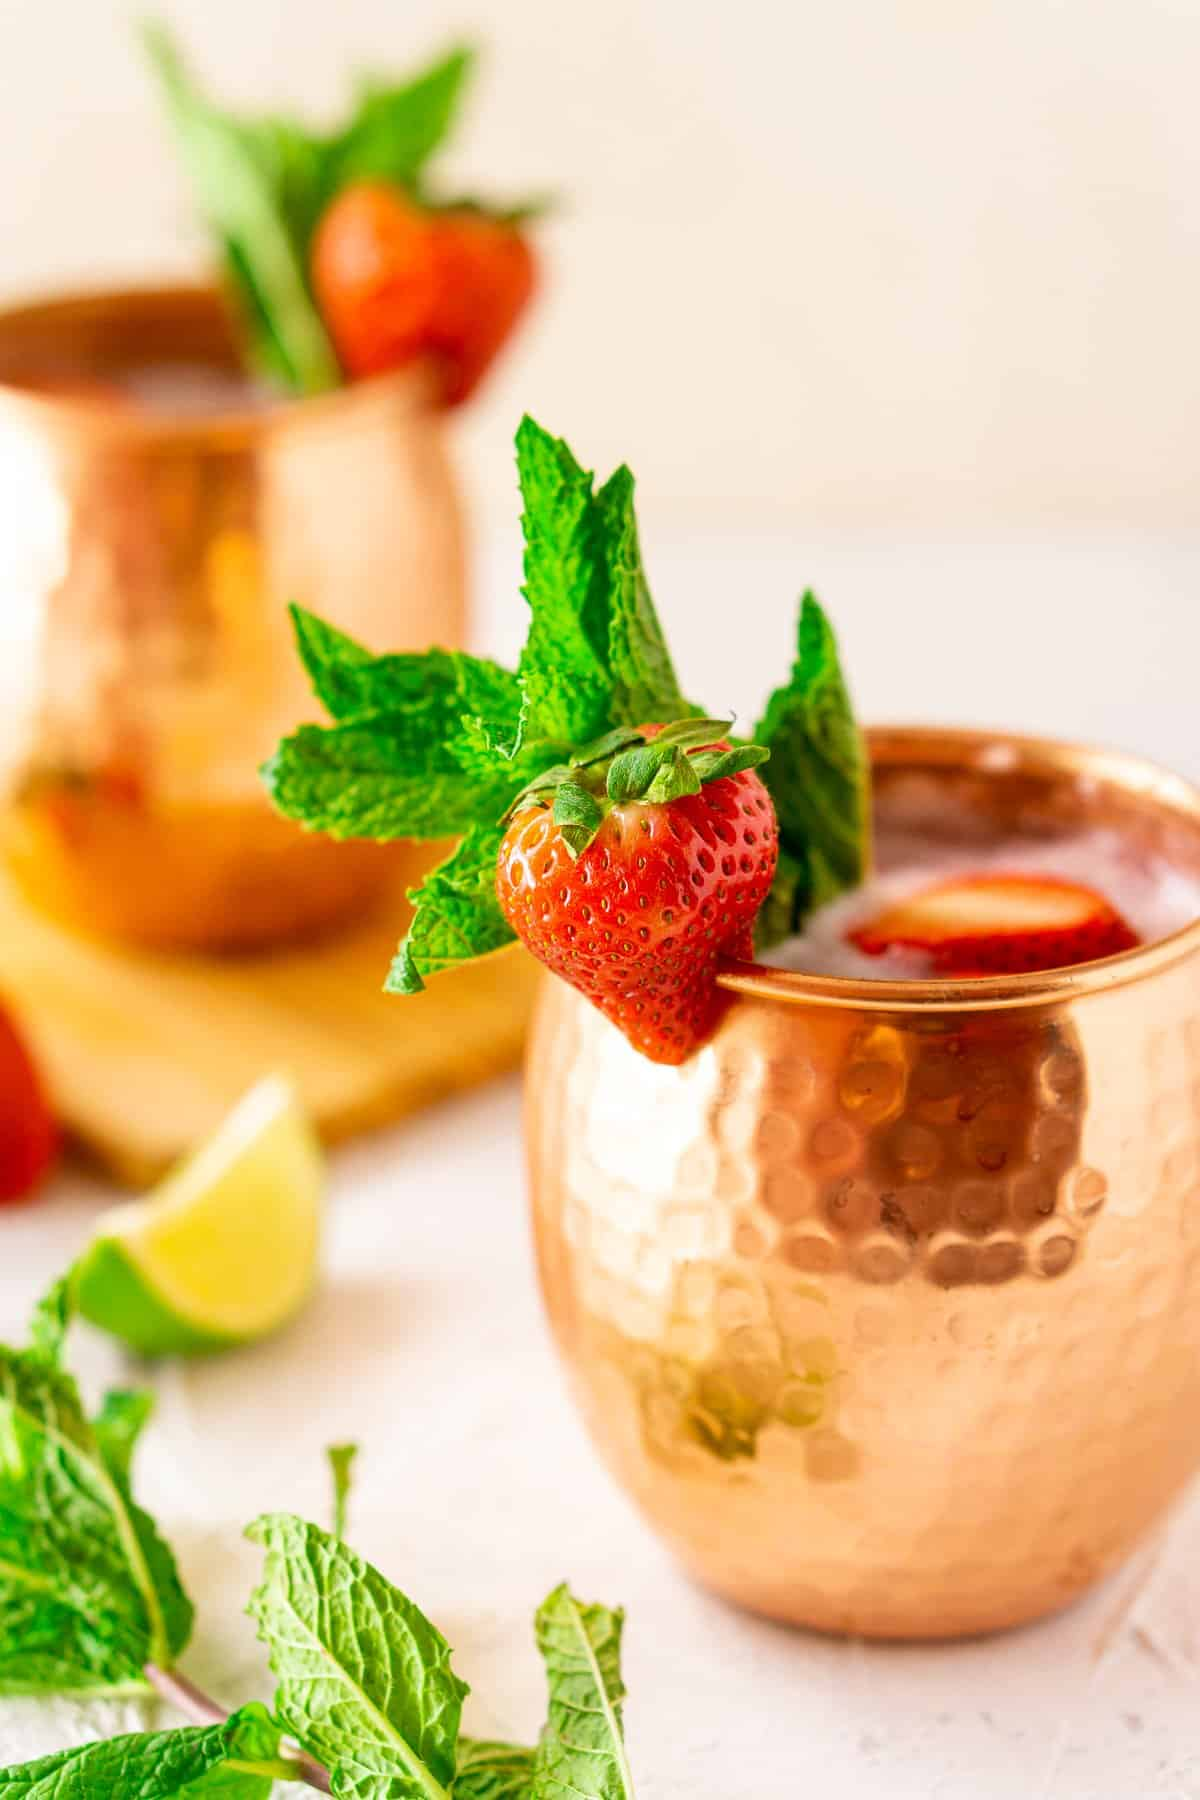 Two strawberry mint Moscow mules with a lime slice and mint sprig next to them on a white board.